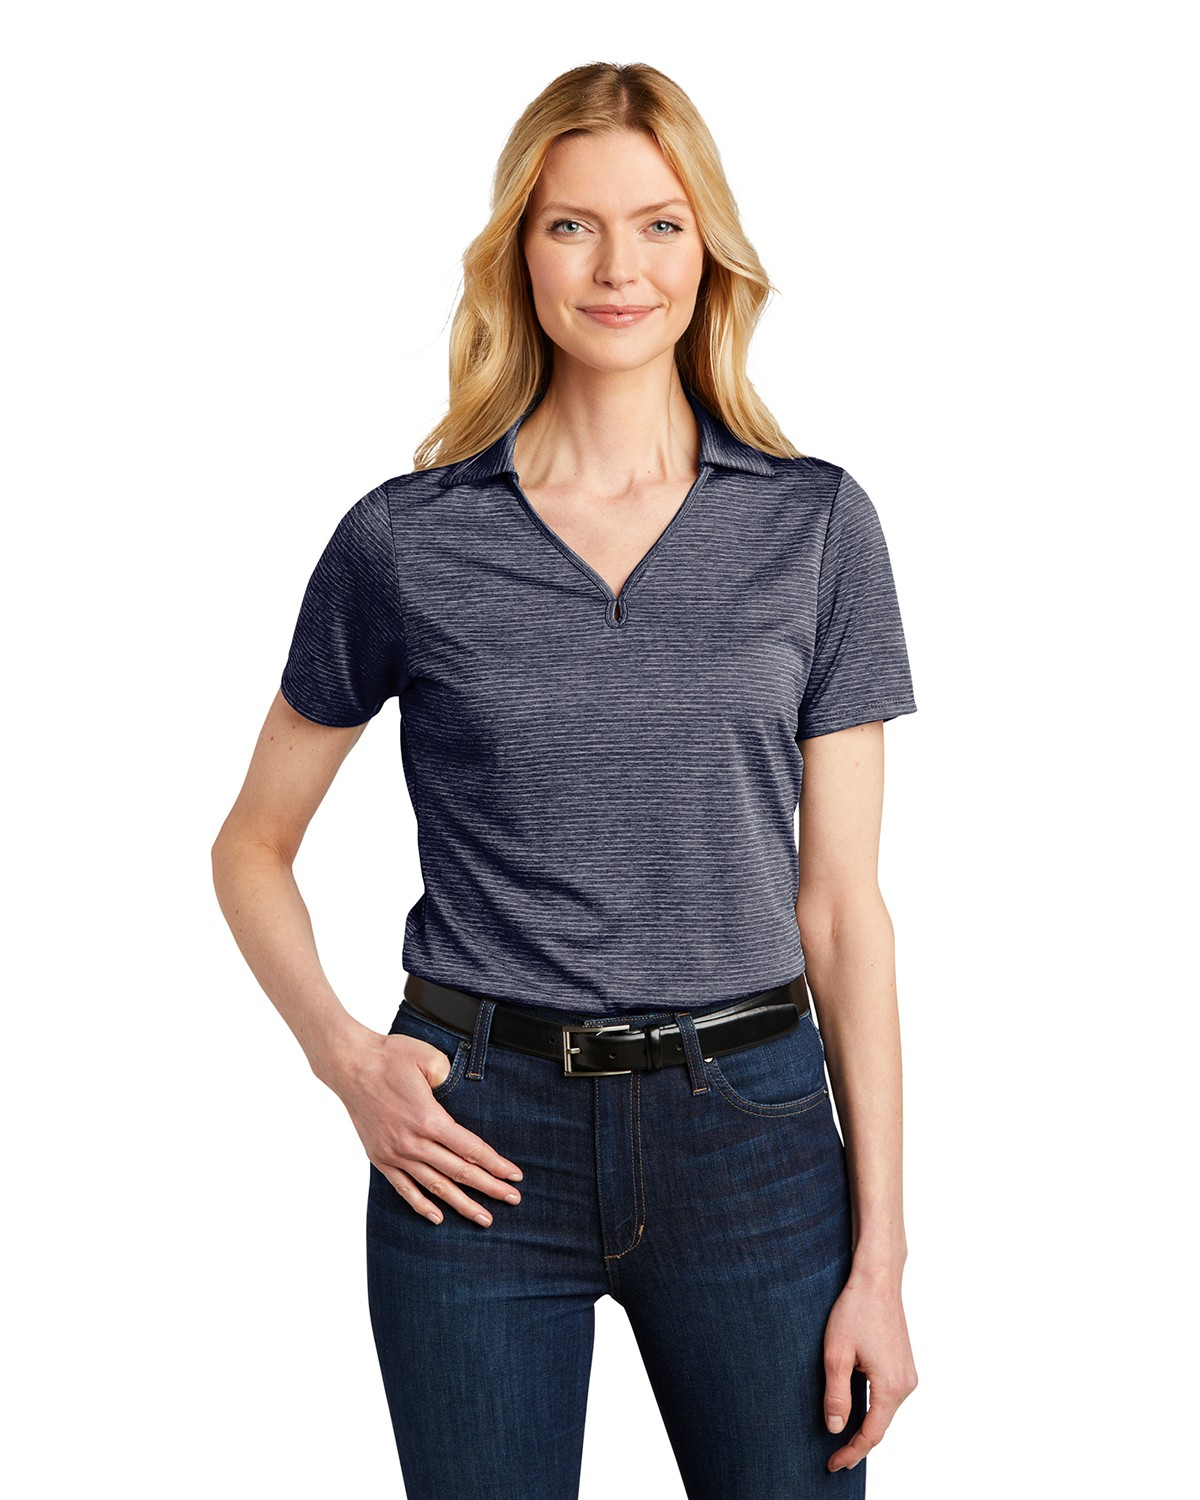 Port Authority LK585 Ladies Shadow Stripe Polo - River Blue Navy - XS from Port Authority